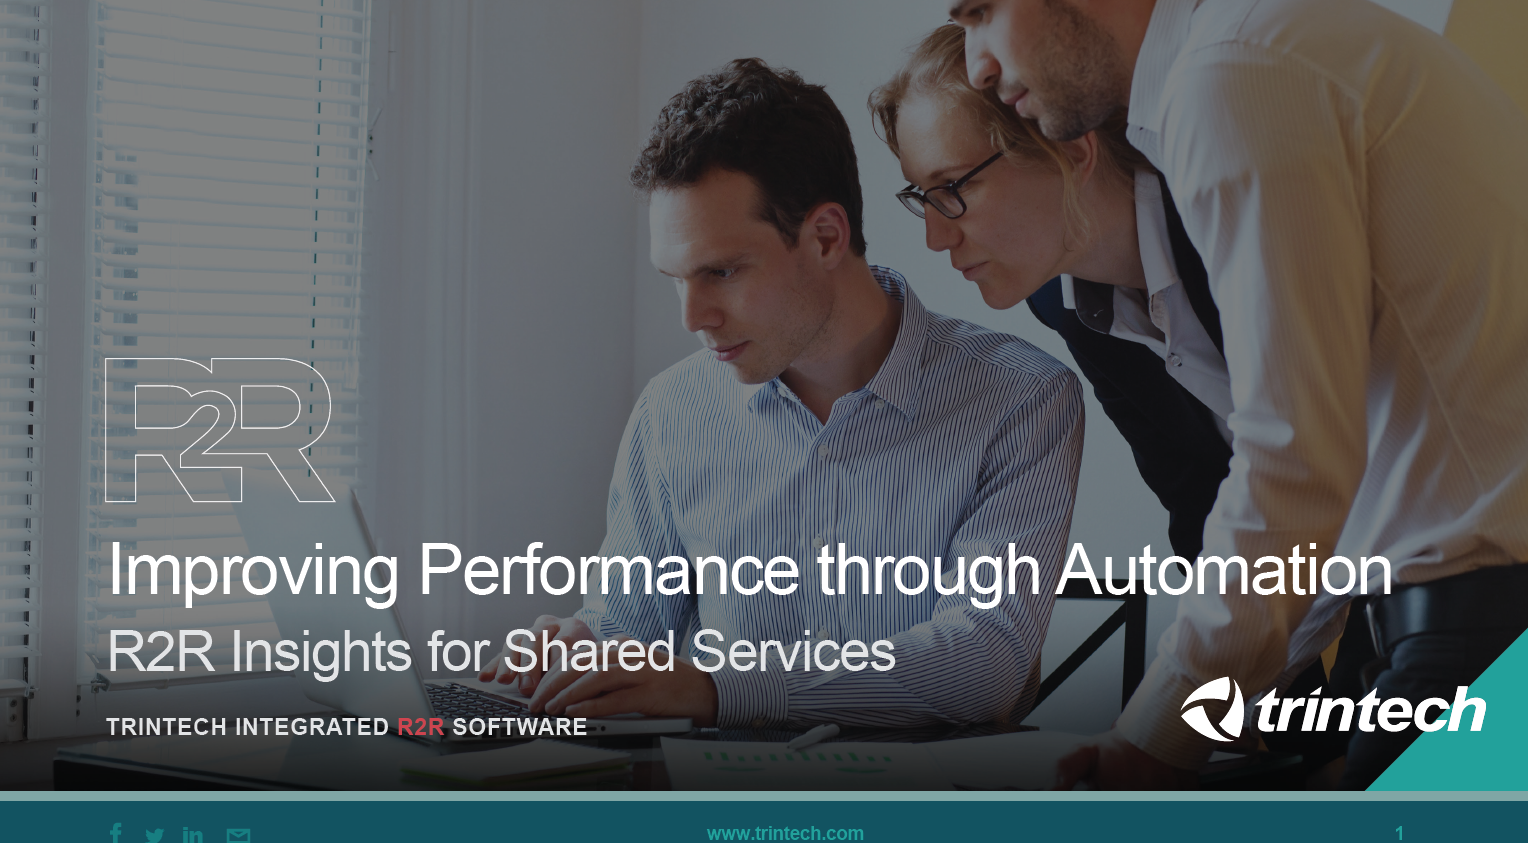 Improving Performance through Automation: R2R Insights for Shared Services